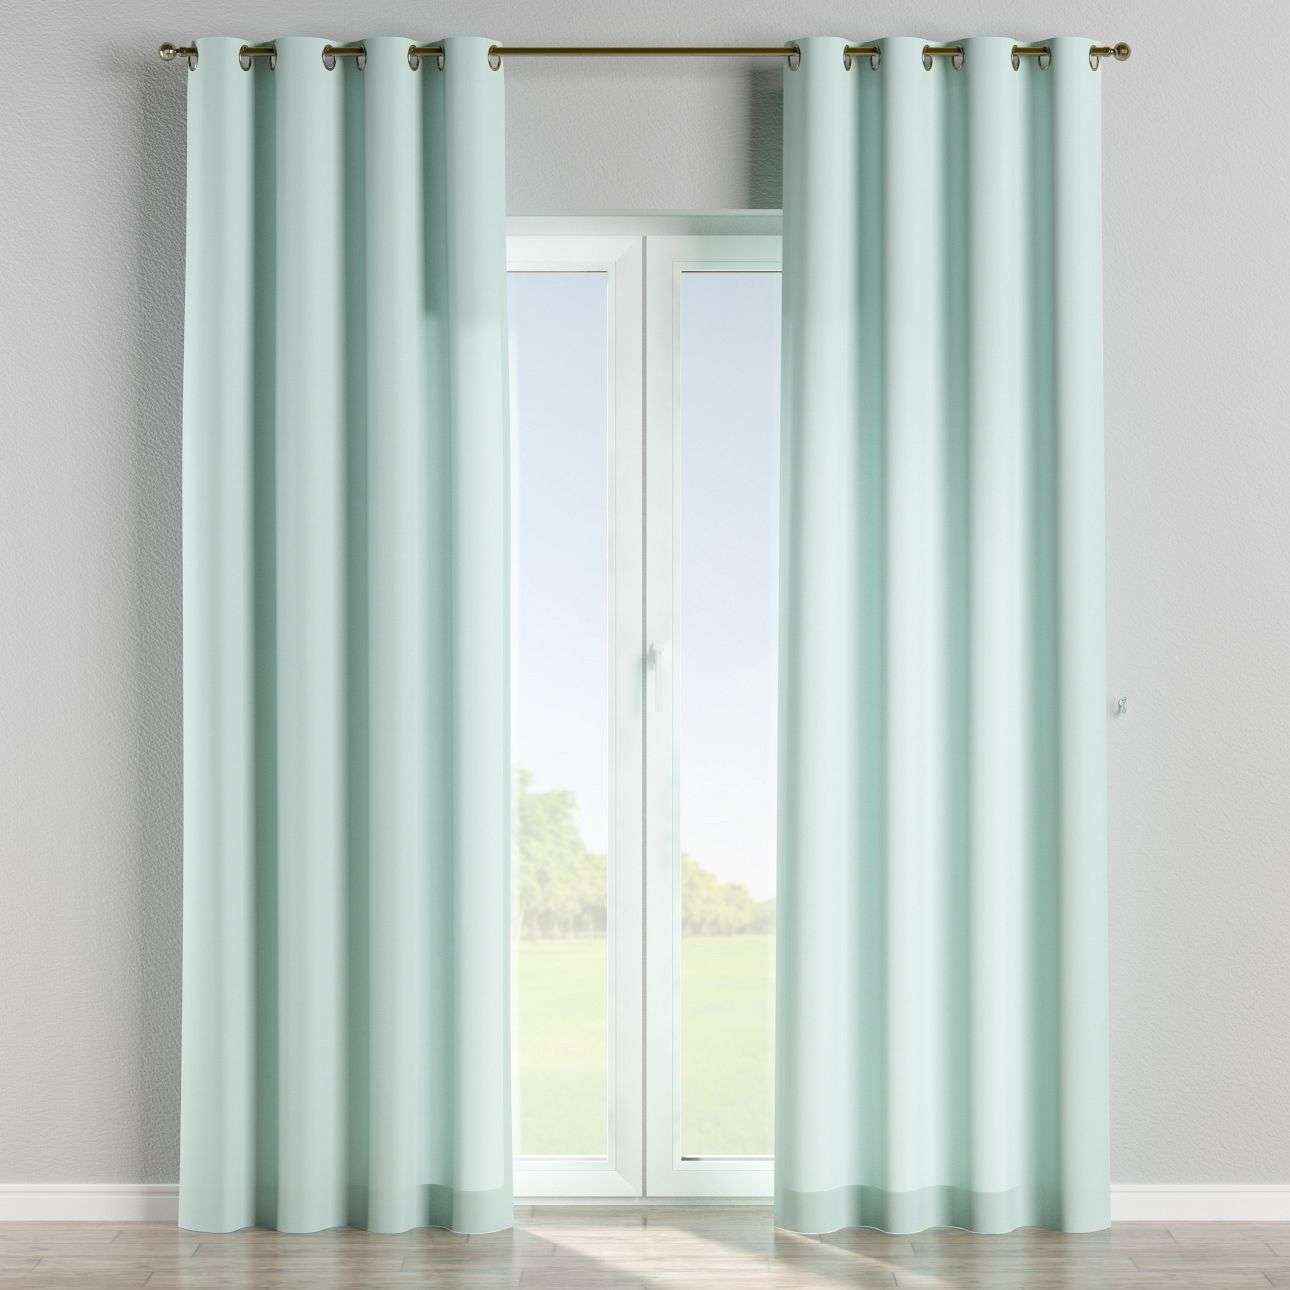 Eyelet curtains 130 x 260 cm (51 x 102 inch) in collection Cotton Panama, fabric: 702-10